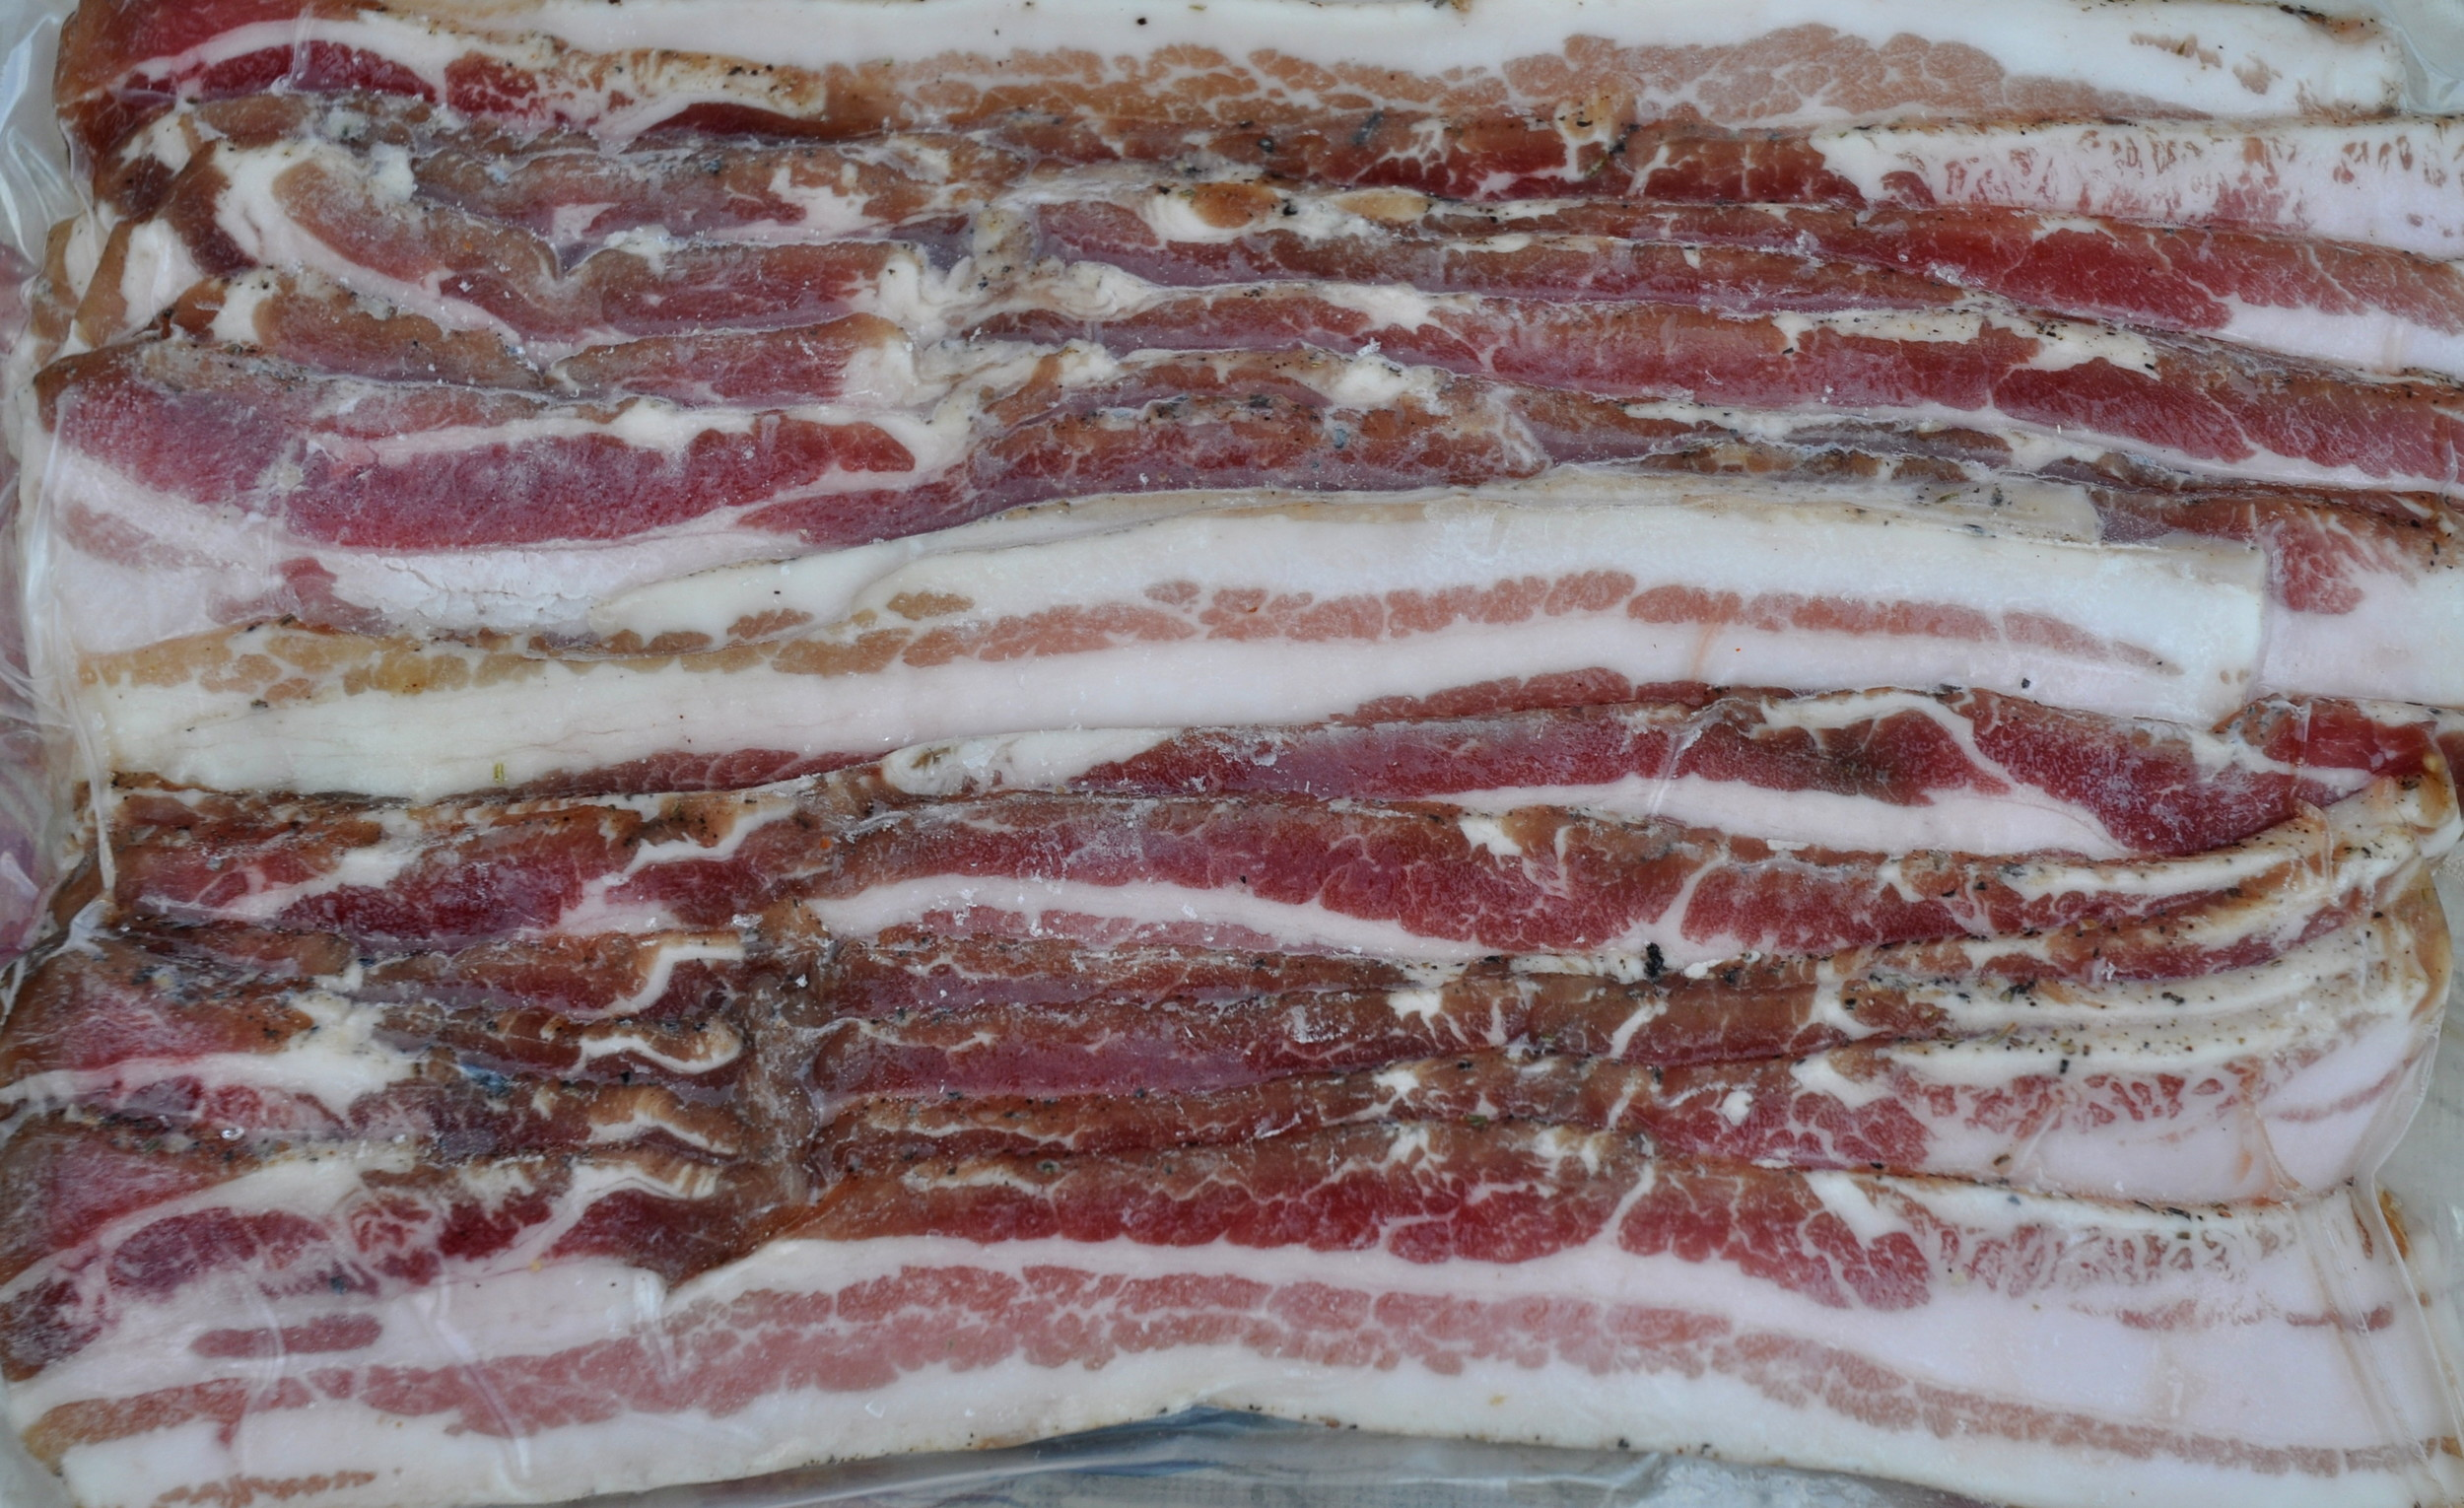 Bacon from Sky Valley Family Farm. Photo copyright 2013 by Zachary D. Lyons.